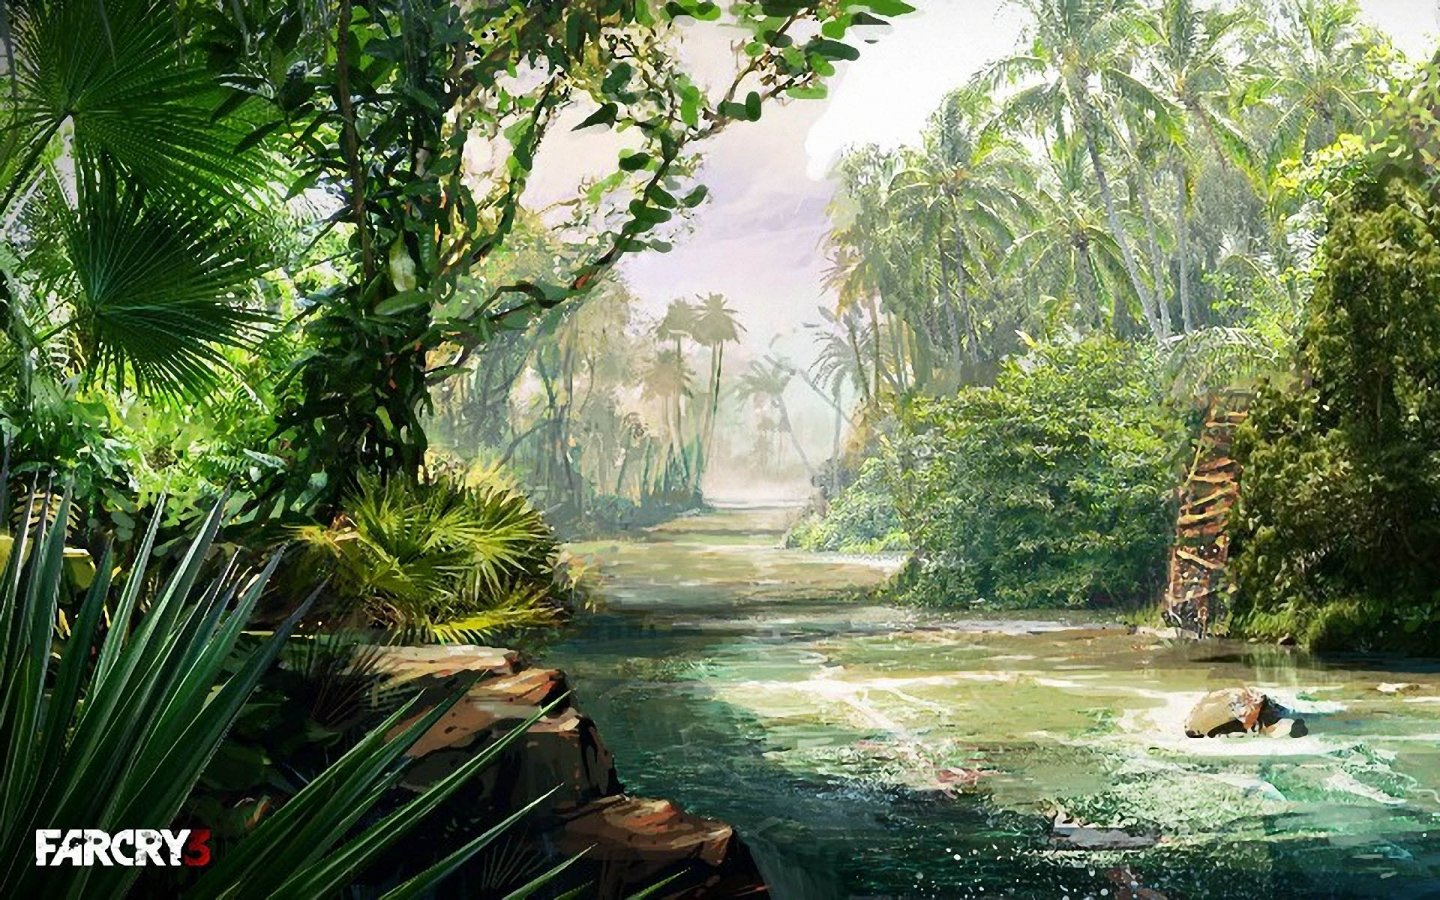 Free Download Far Cry 3 River 1440x900 Wallpapers 1440x900